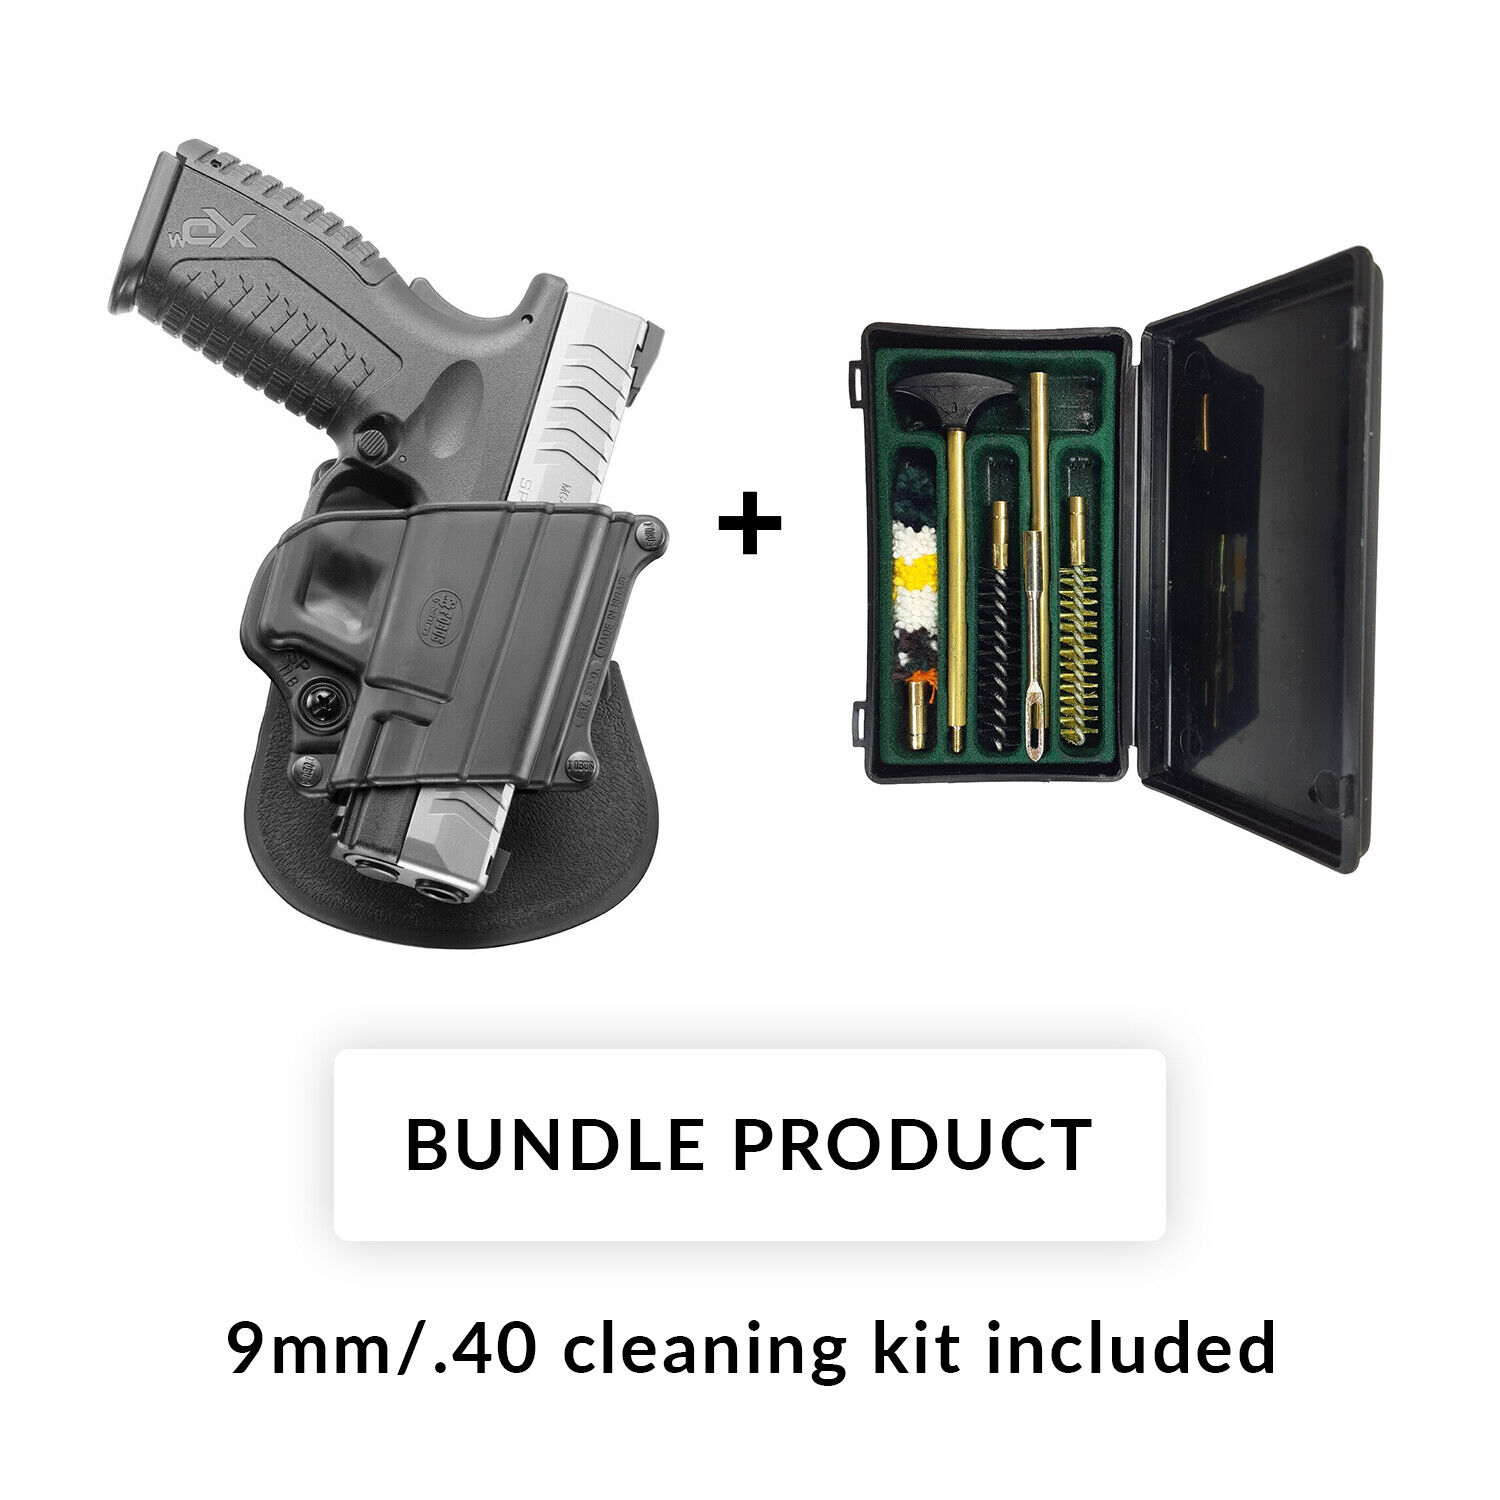 Details about BUNDLE Fobus roto retention paddle holster springfield  xd,xdm,9mm,40,45/HK p2000